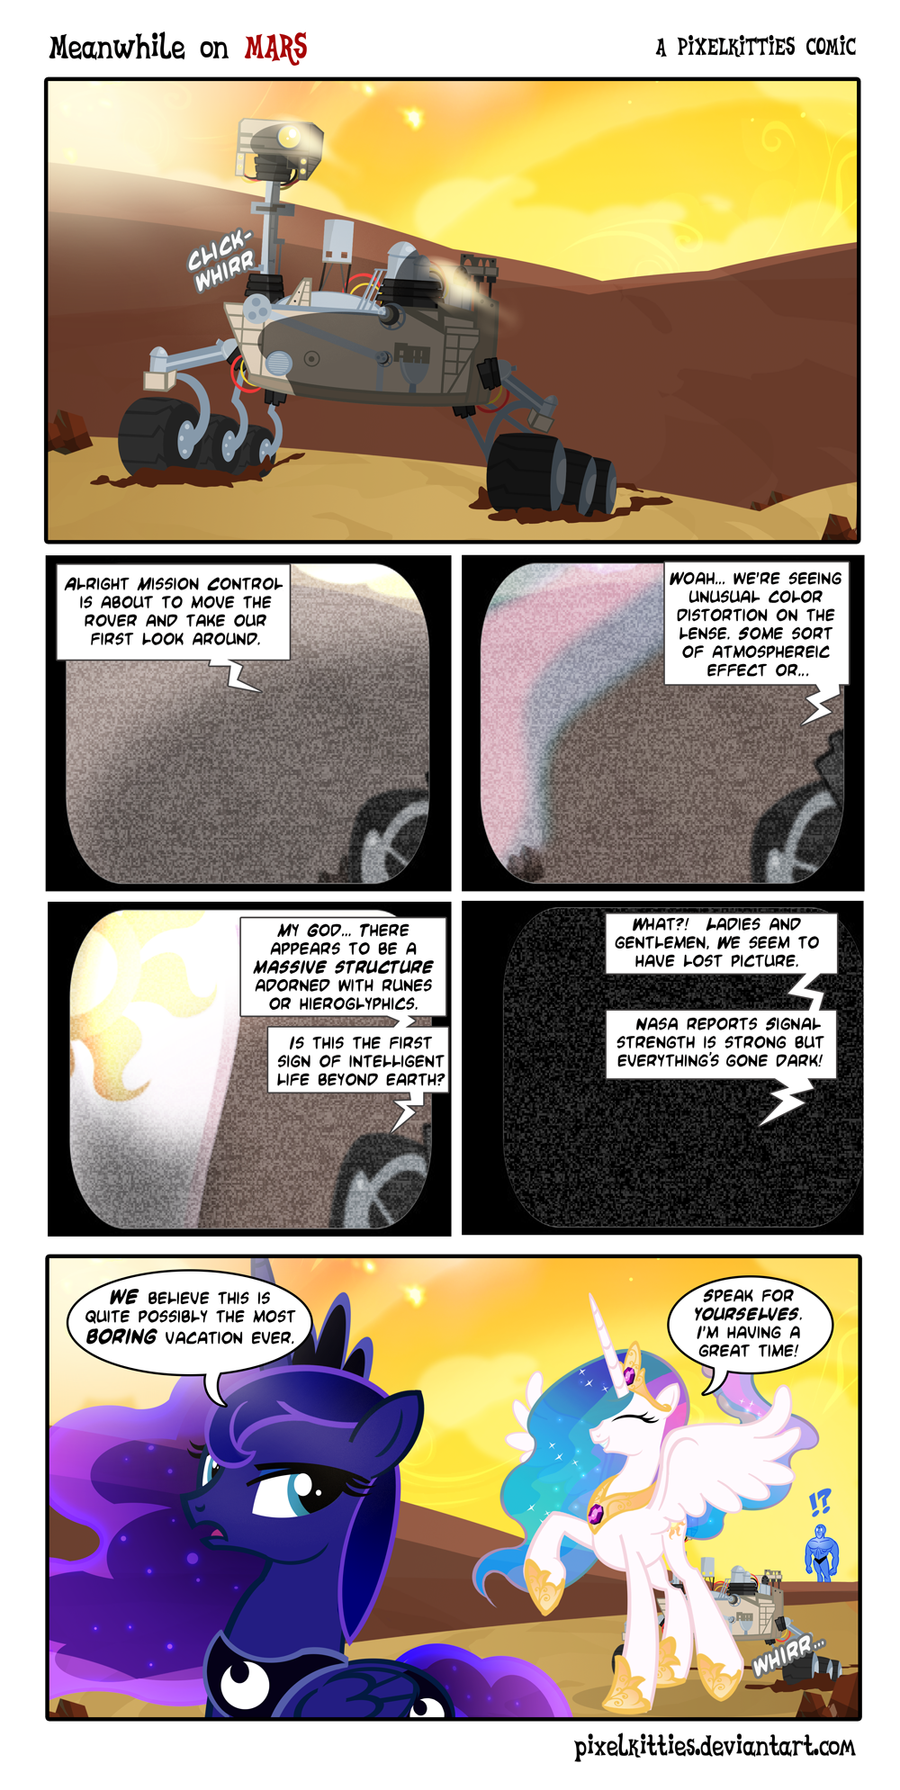 Meanwhile On Mars comic by PixelKitties